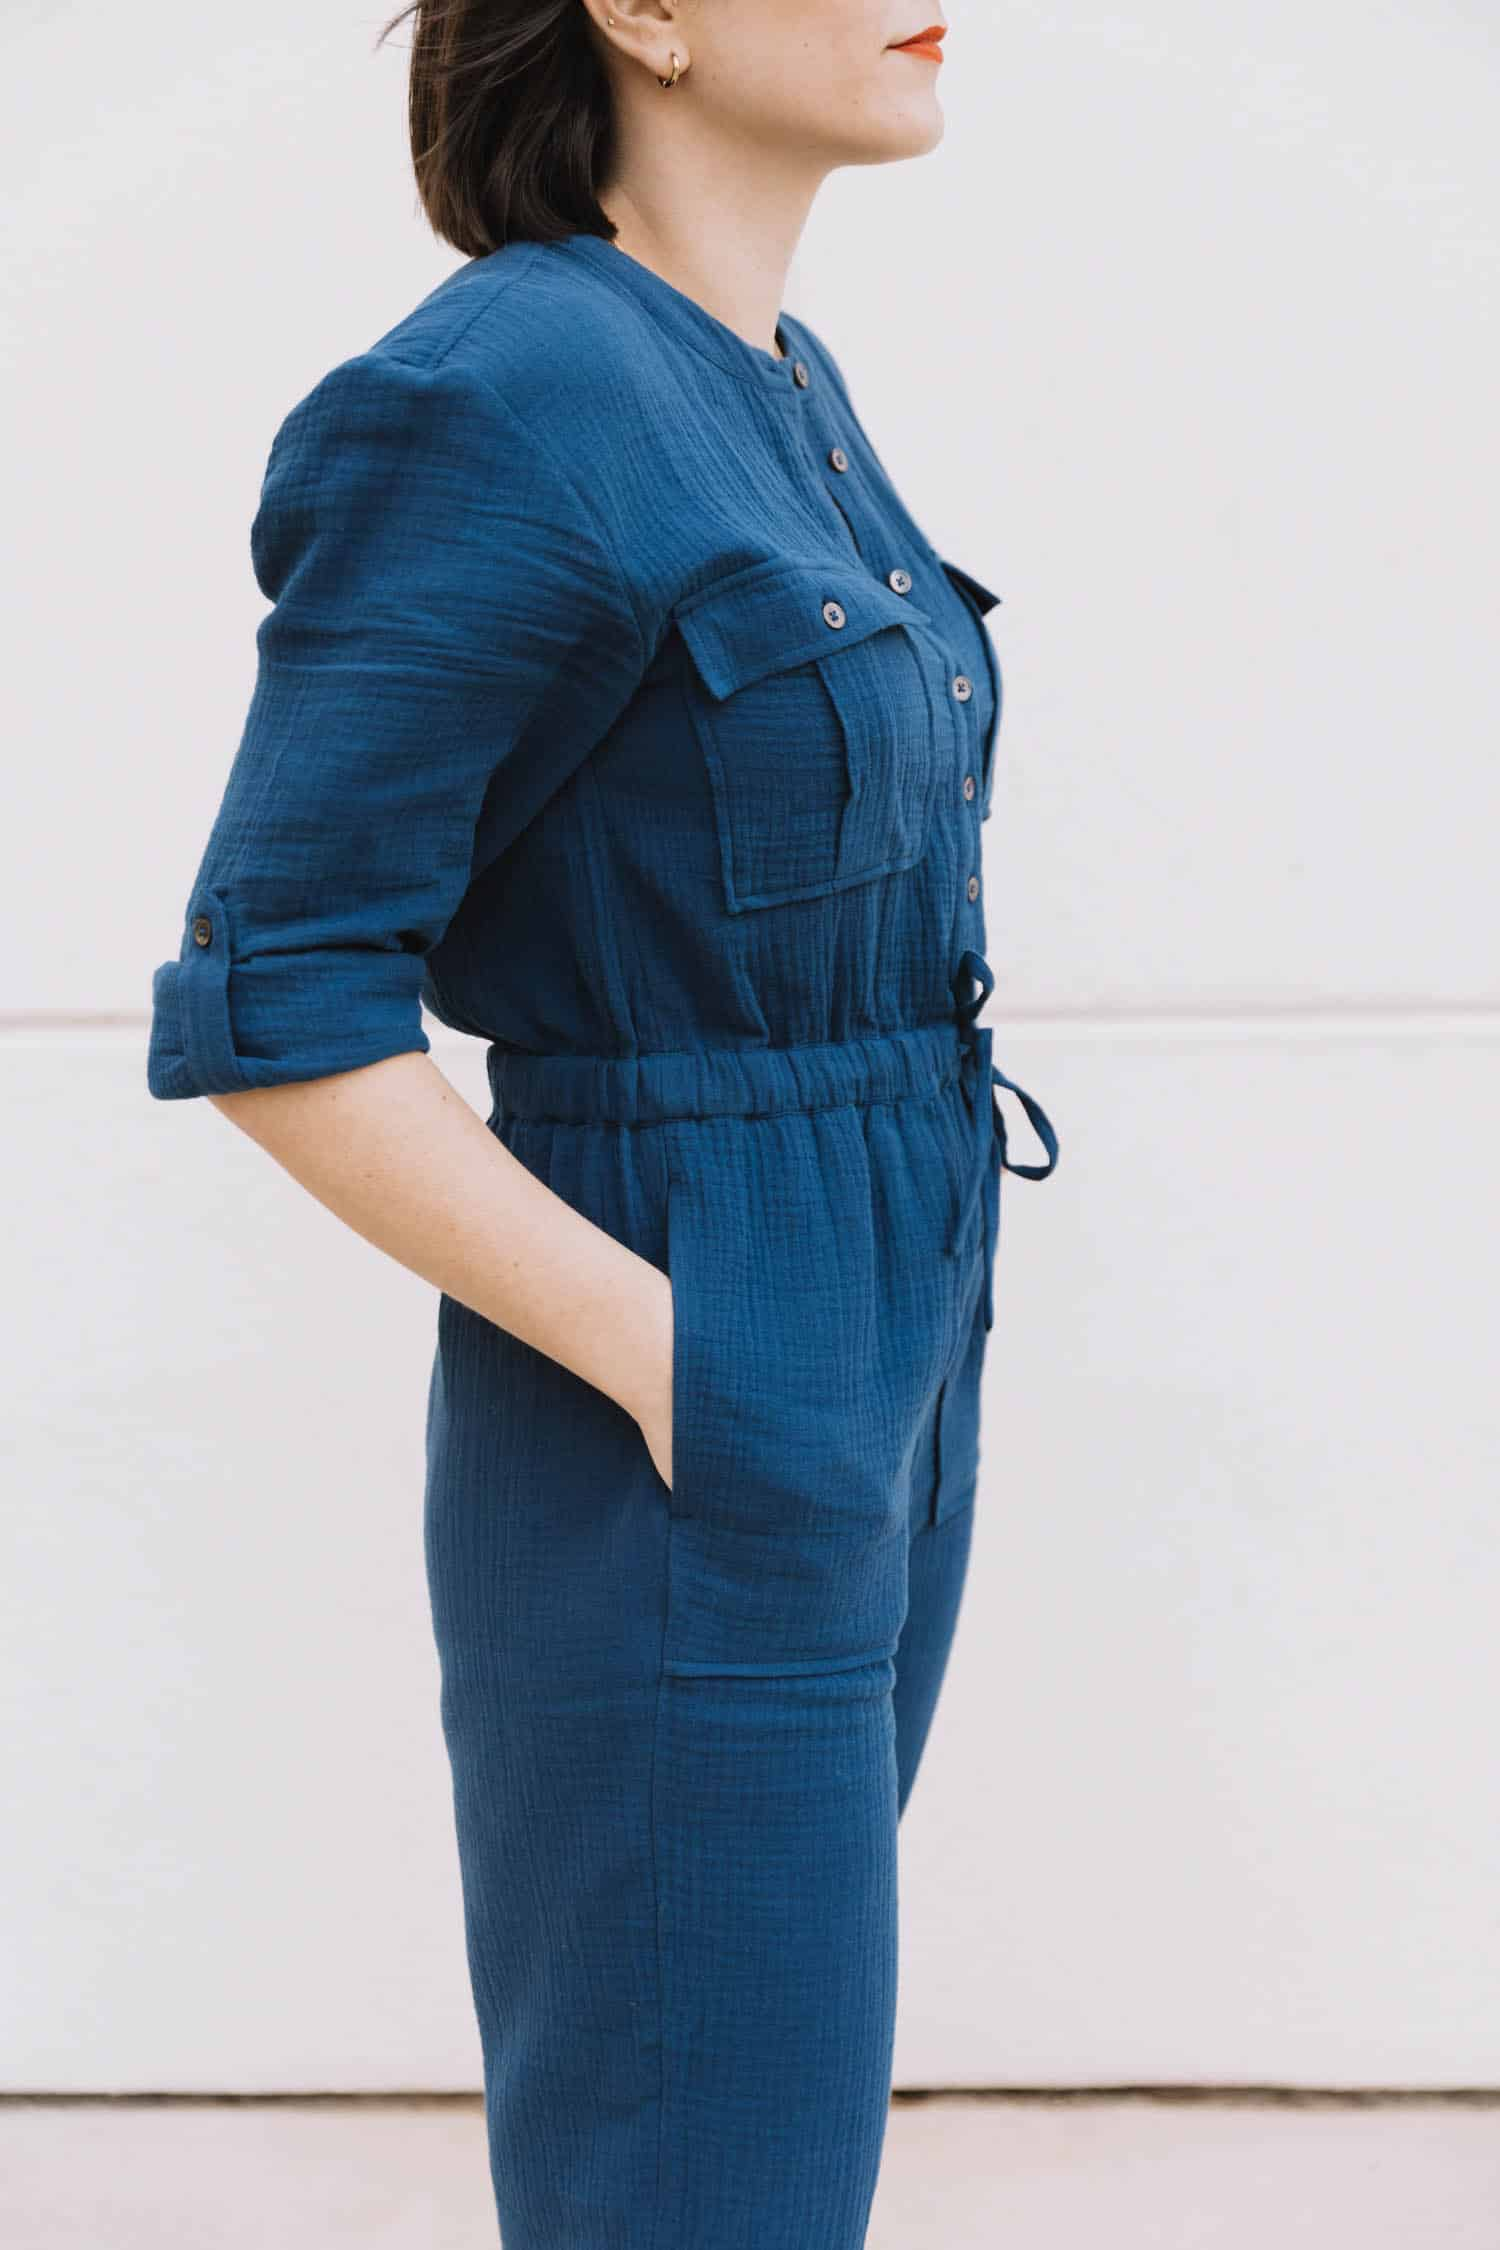 madewell cotton jumpsuit for spring